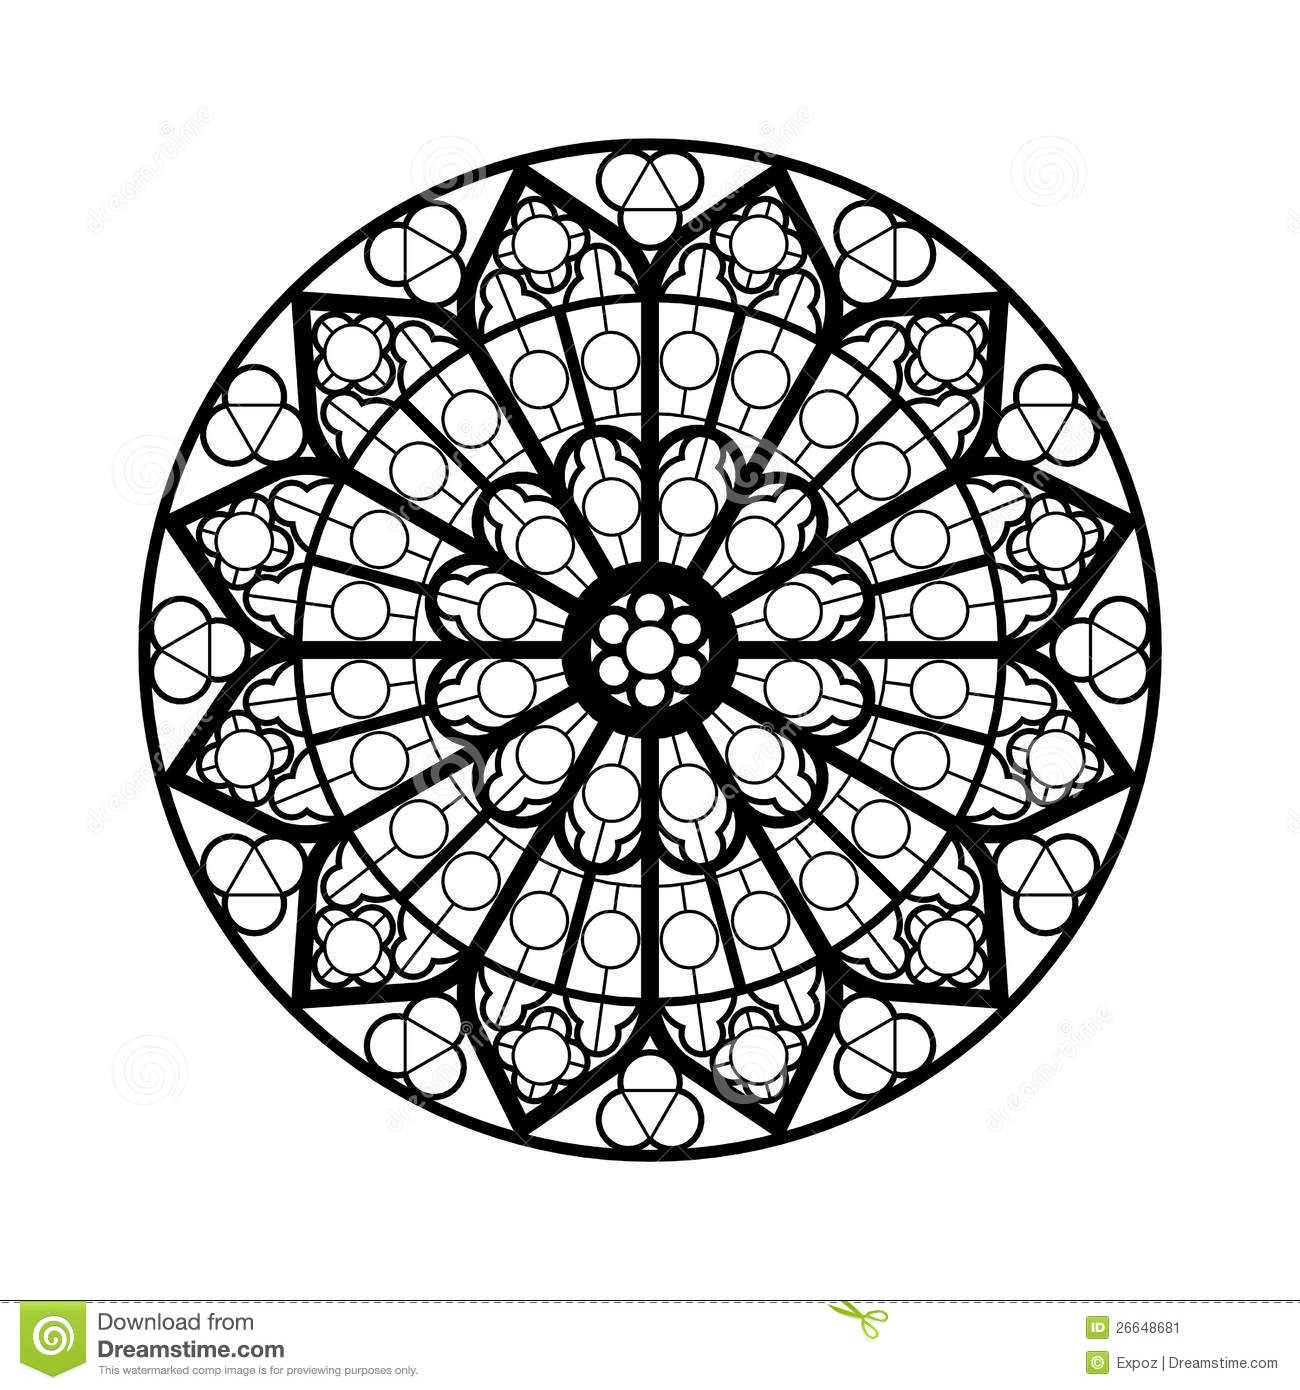 Stained glass window shape stock illustration. Image of